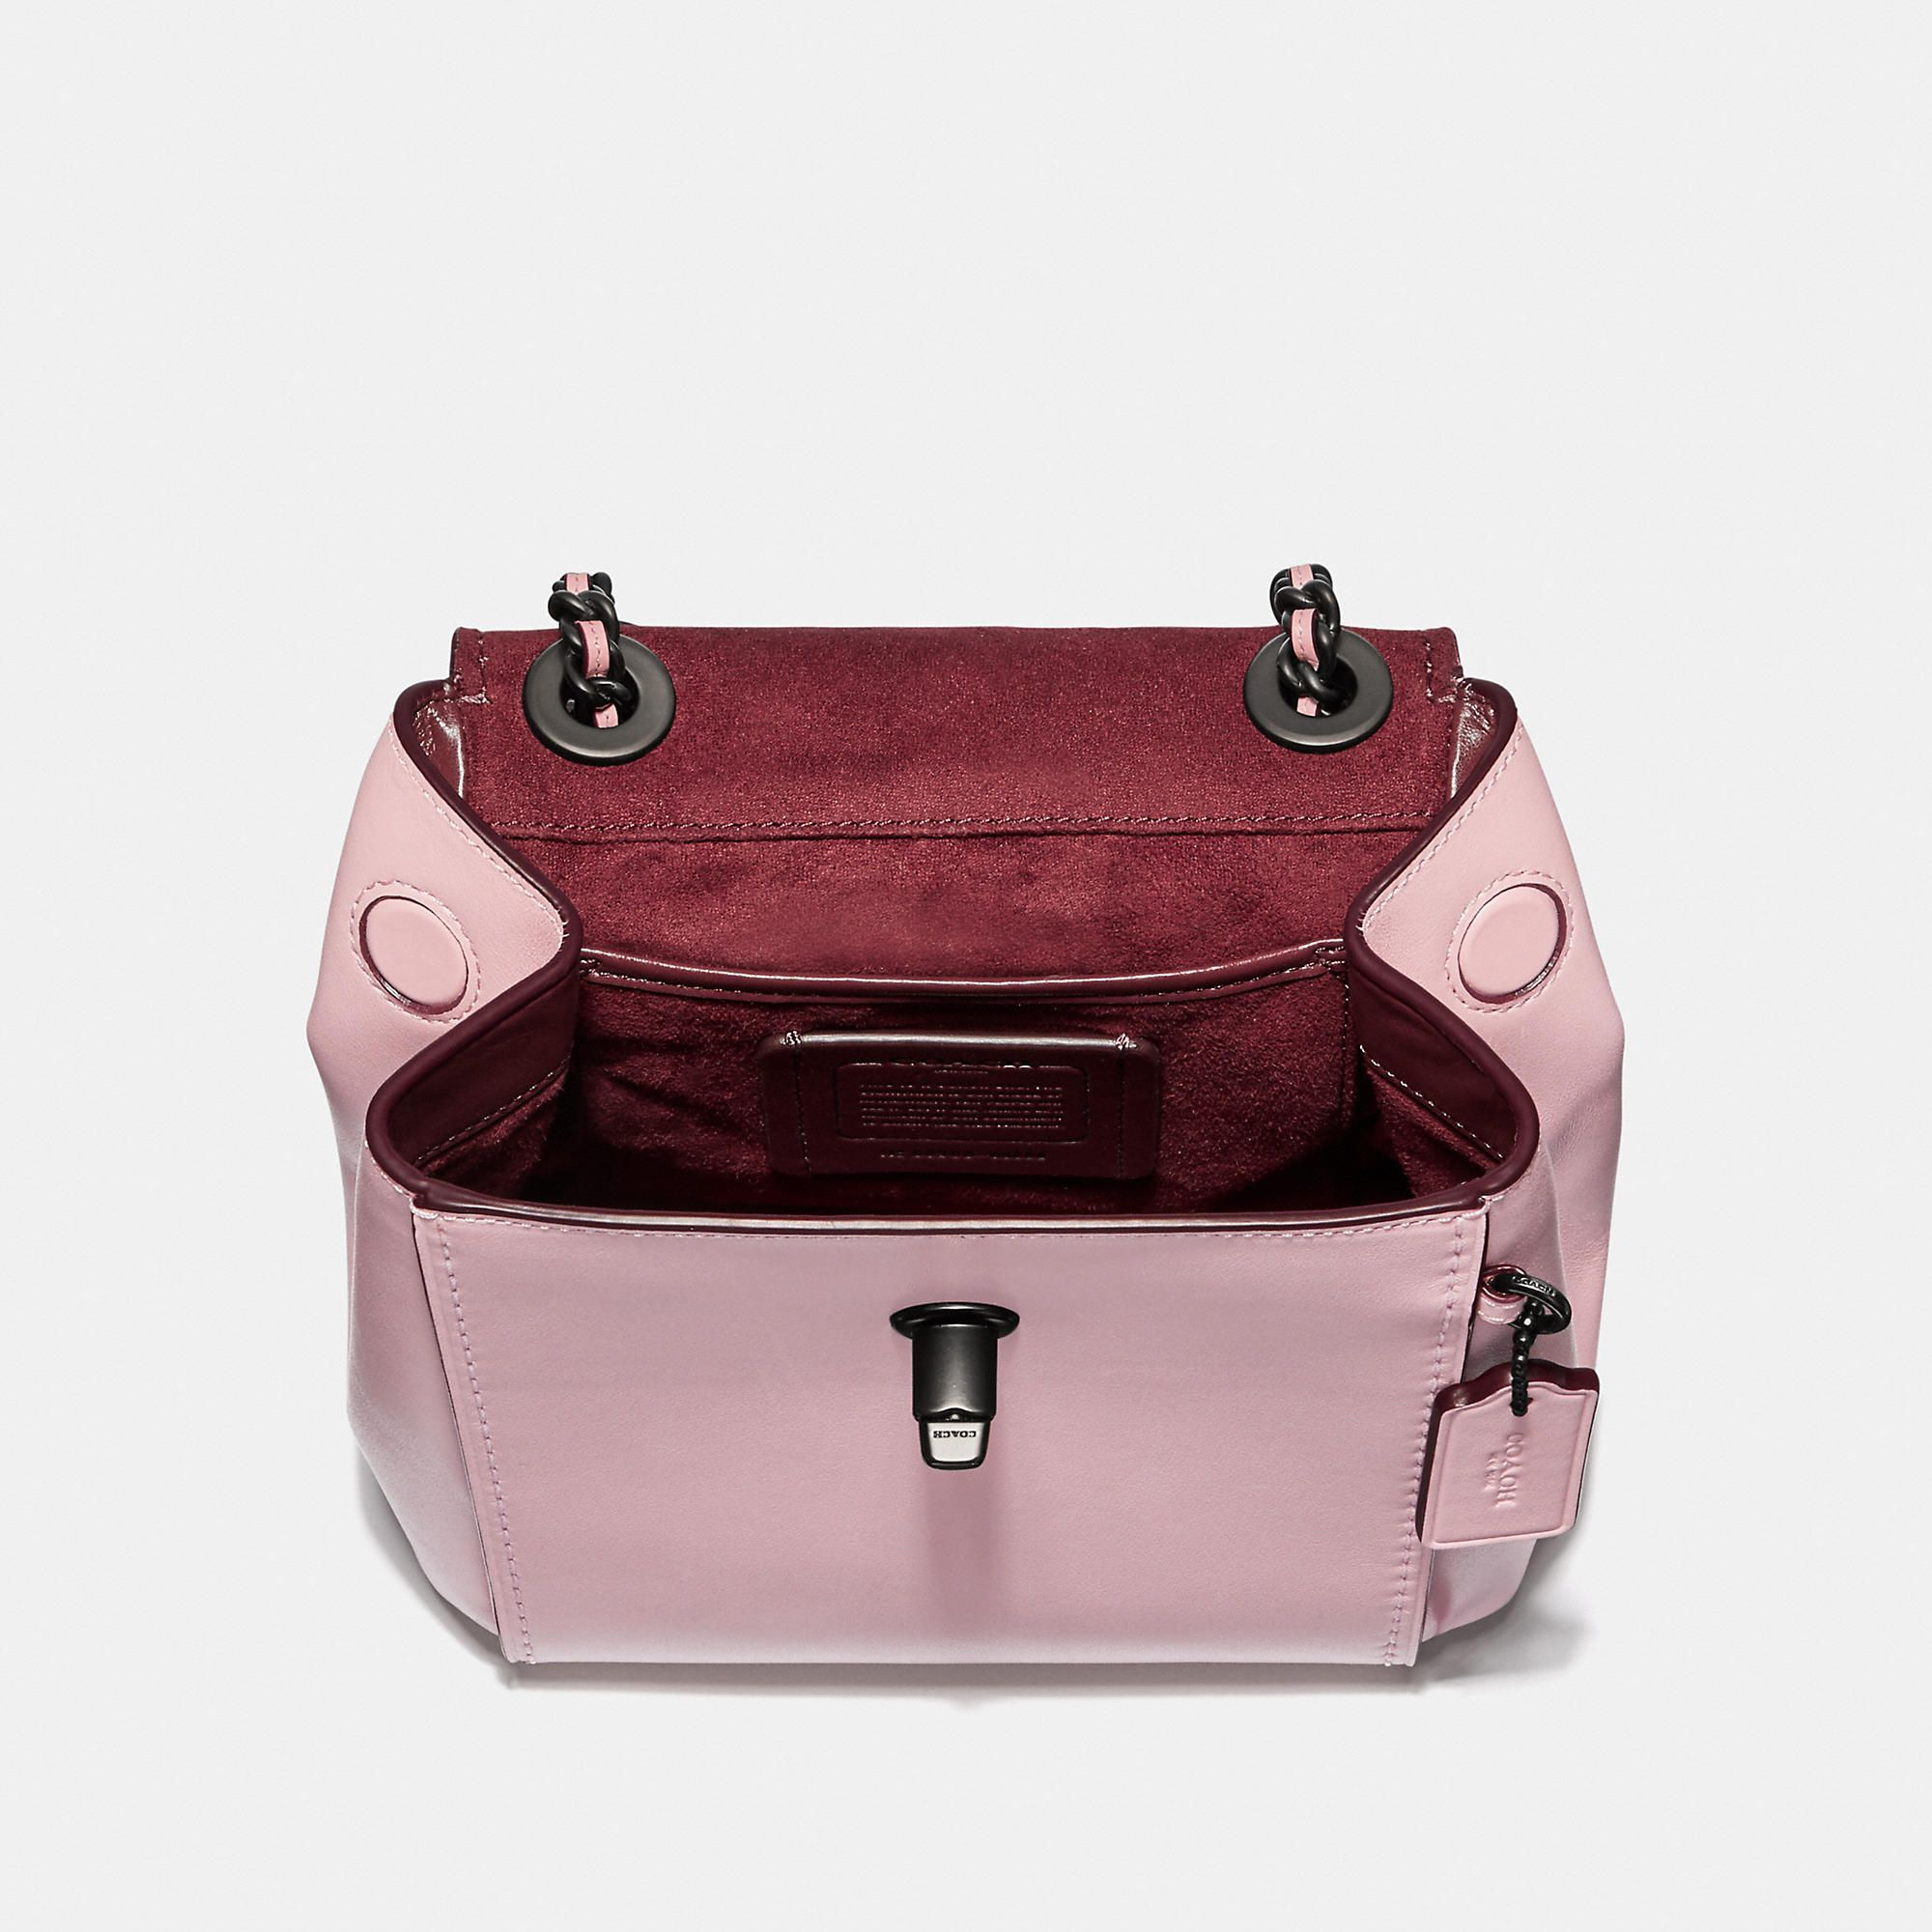 ab4ceed2112 COACH Parker Convertible Backpack 16 With Tea Rose Stones - Women's  Backpacks